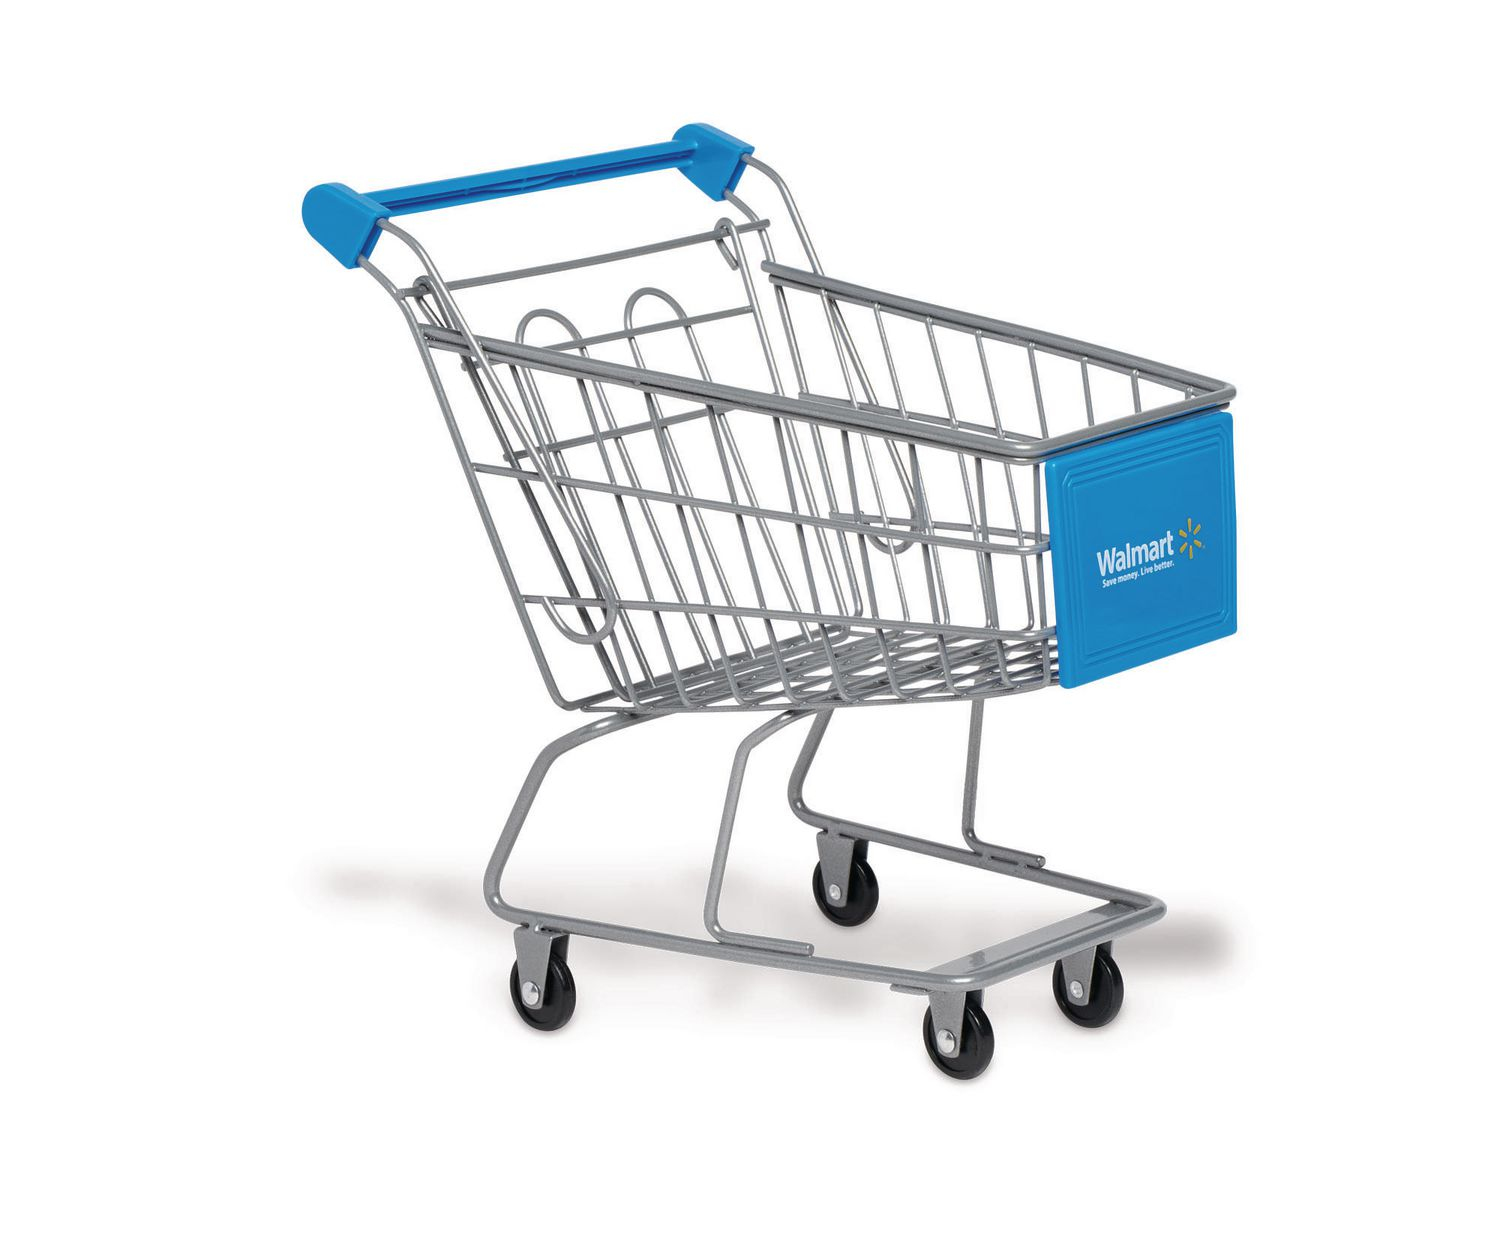 my life as shopping cart walmart canadamy life as shopping cart image 1 of 1 zoomed image